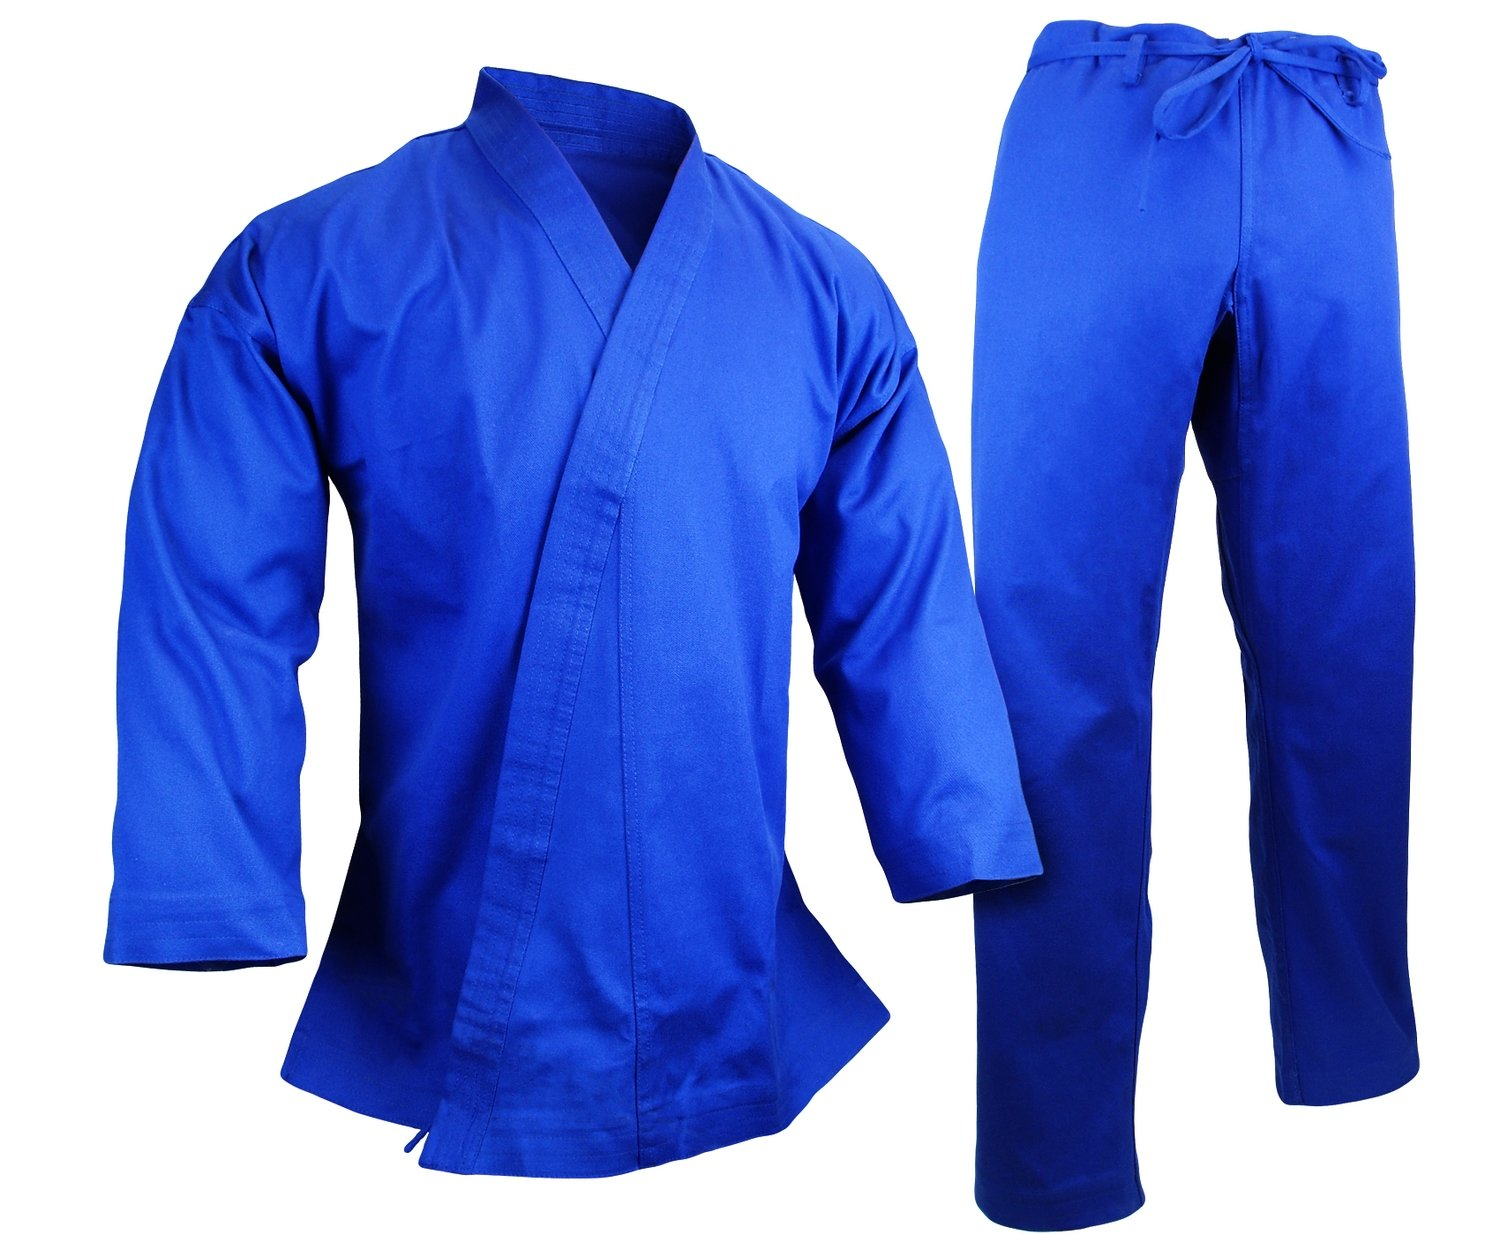 Karate Uniform 12 oz., Blue